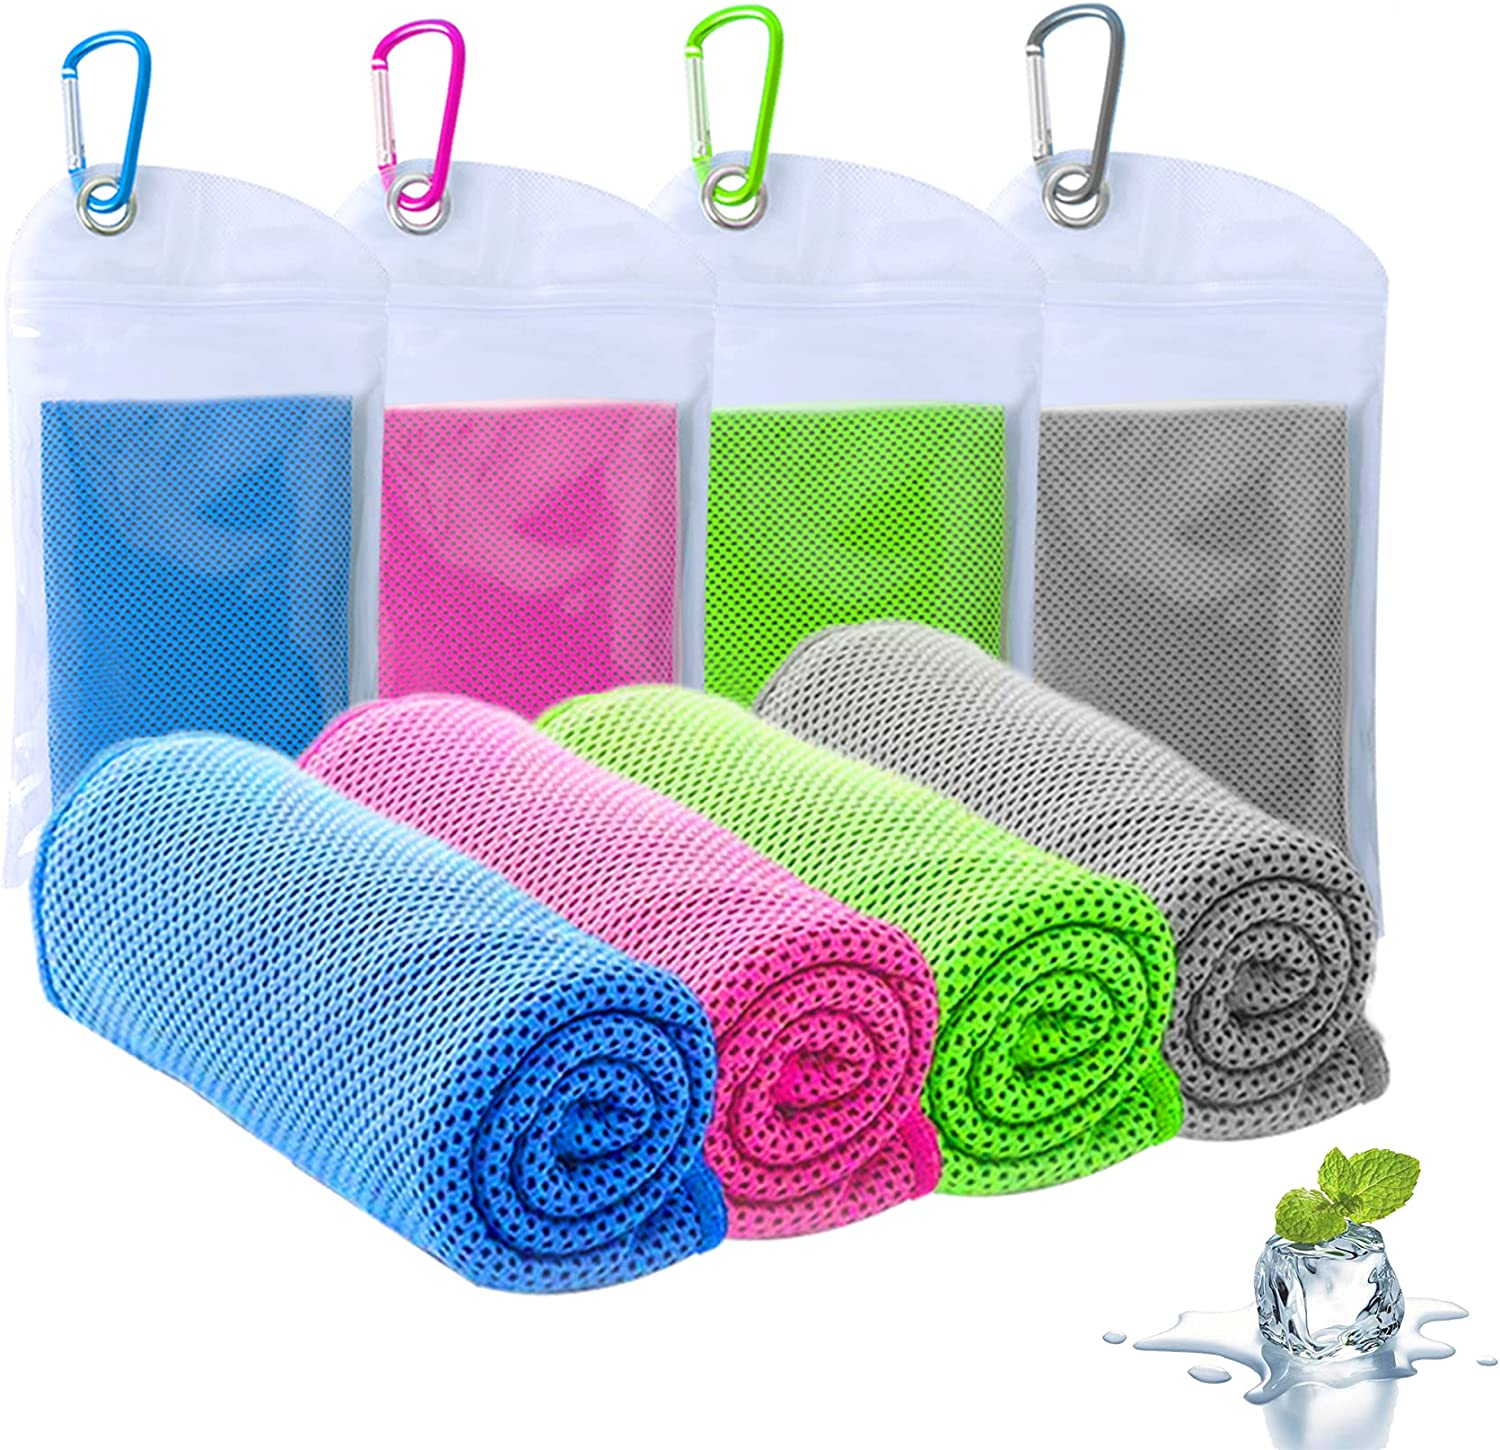 ICECUUL Quick Dry Cooling Max 86% OFF Towel 4 Recommended Microfiber 44x15 Packs